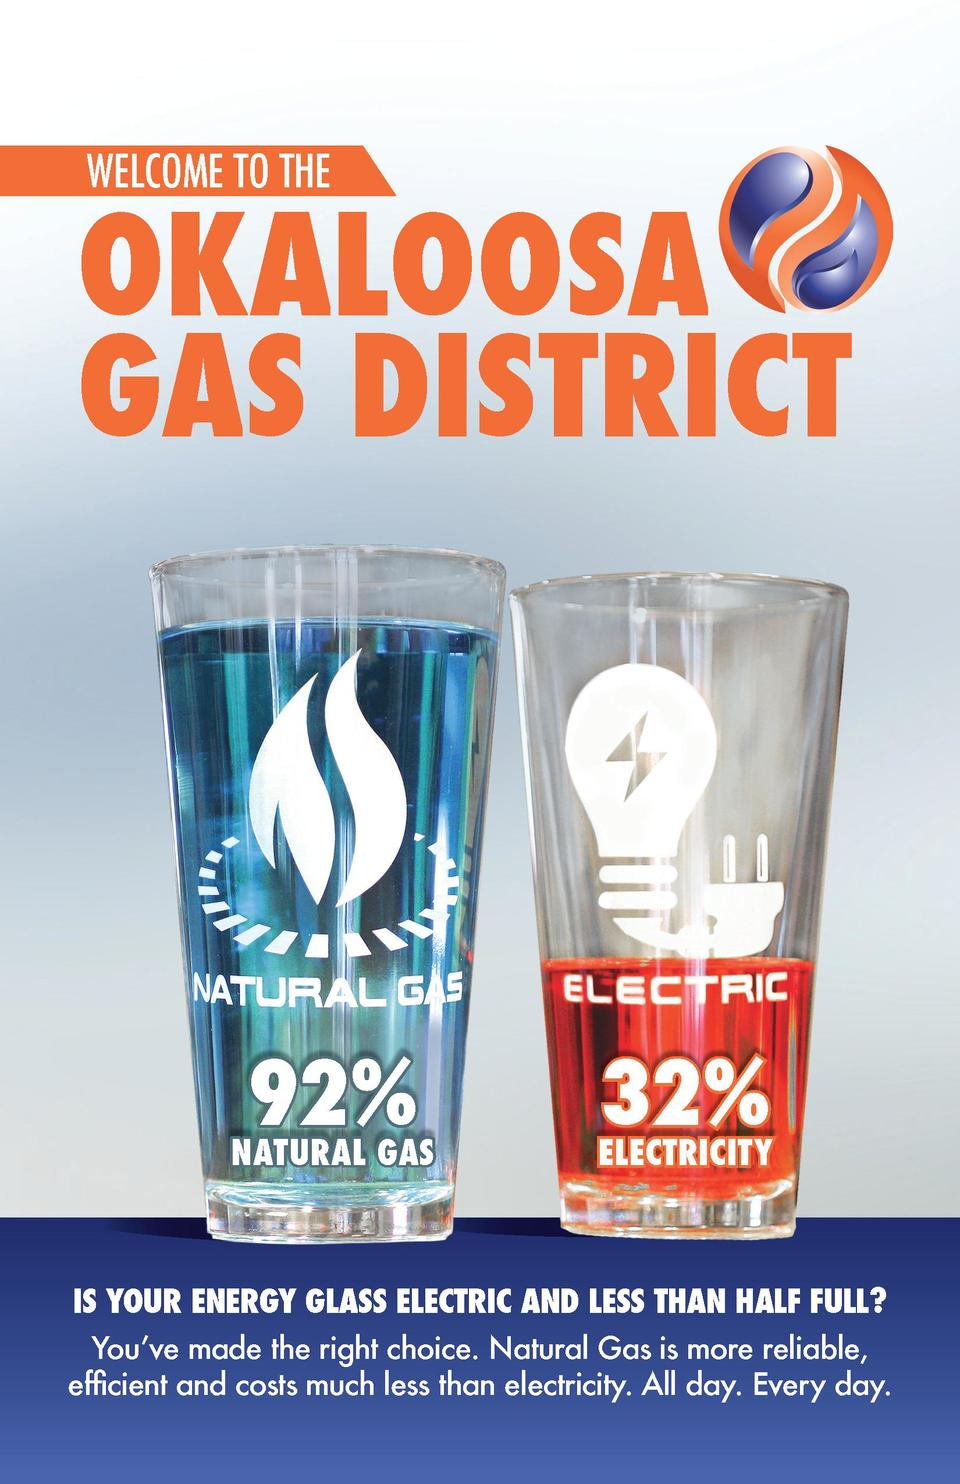 WELCOME TO THE  OKALOOSA GAS DISTRICT  92  NATURAL GAS  32   ELECTRICITY  IS YOUR ENERGY GLASS ELECTRIC AND LESS THAN HALF...